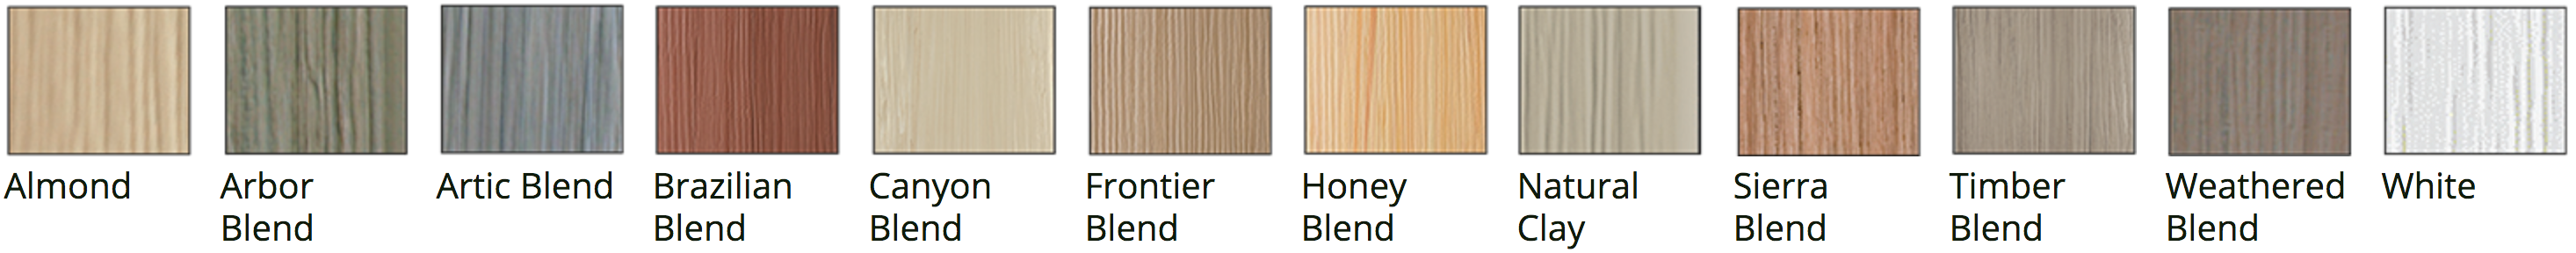 textured fence color options